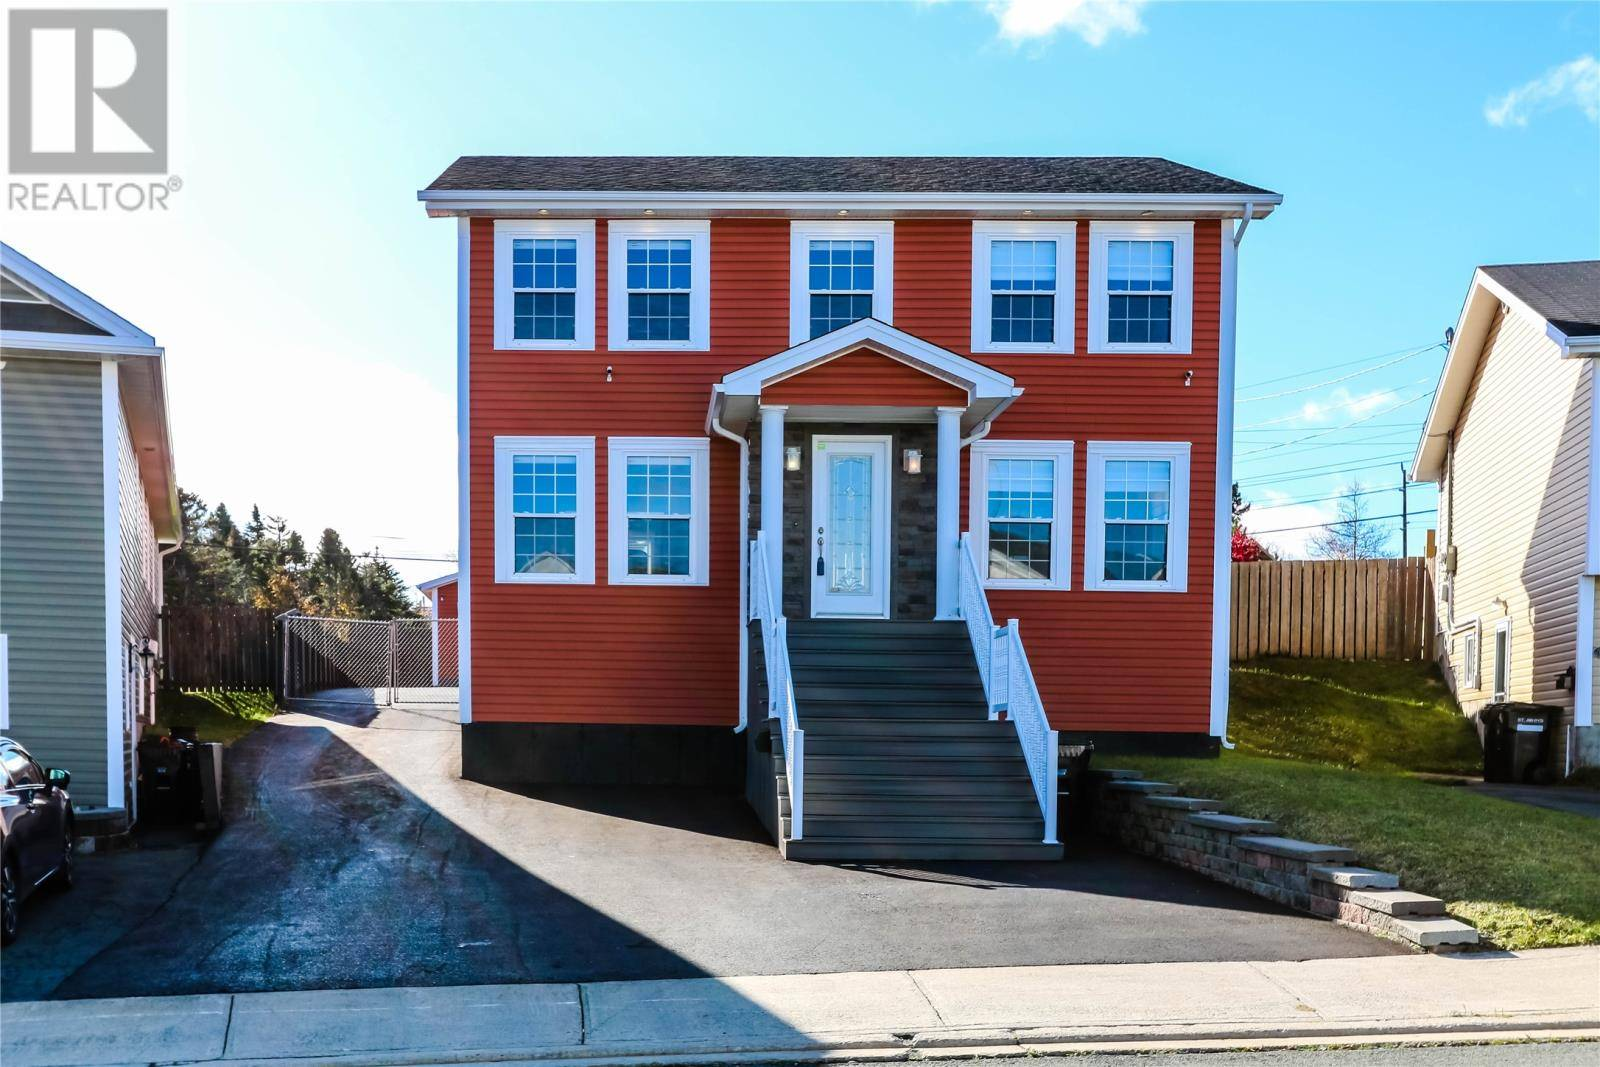 House for sale at 99 Winslow St St. John's Newfoundland - MLS: 1206989